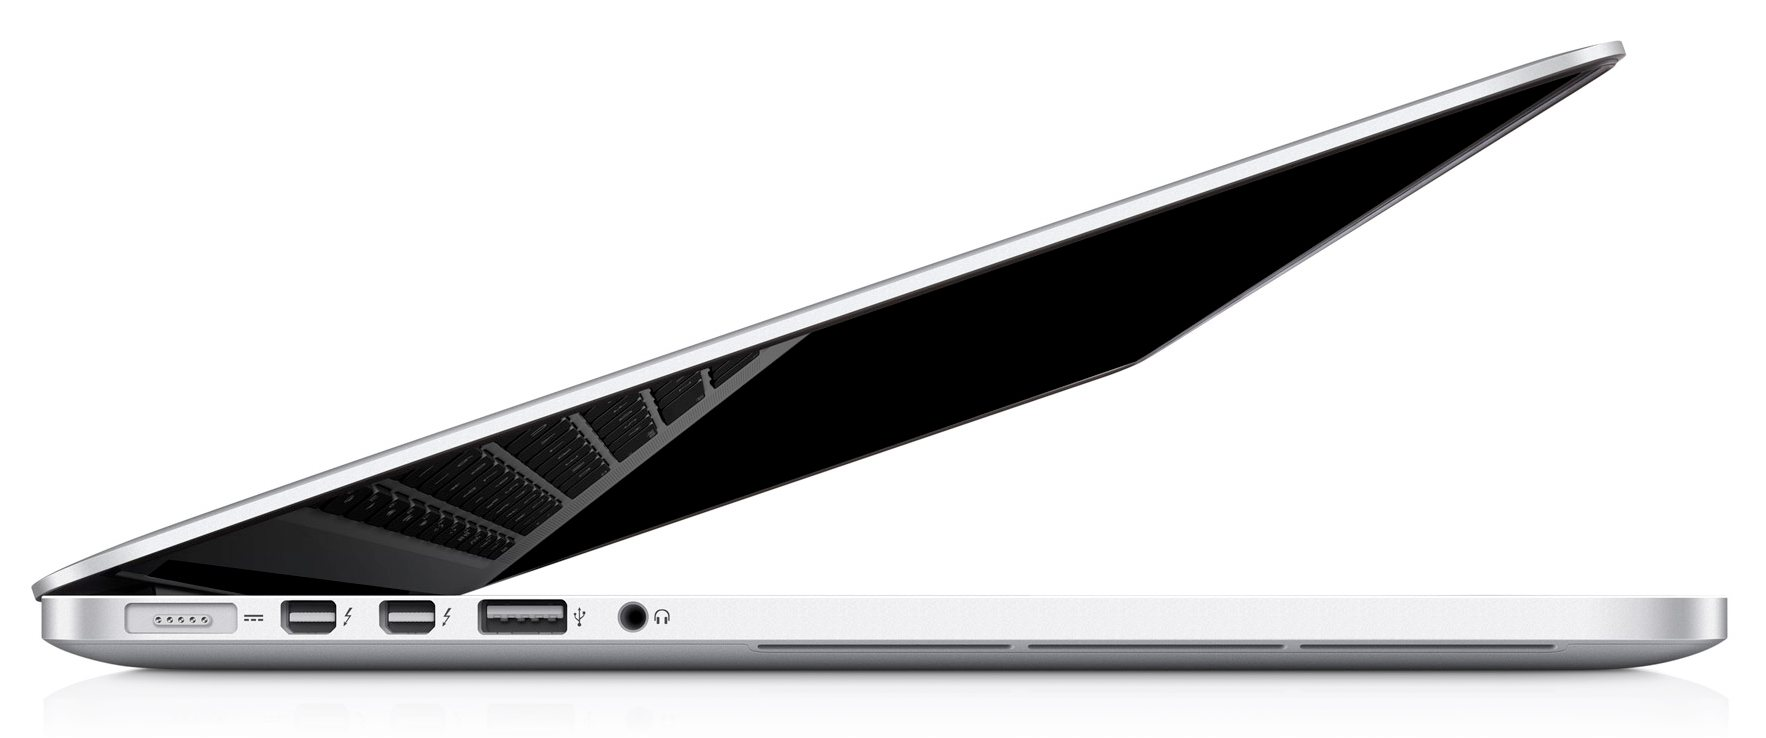 Apple MacBook Pro vista laterale